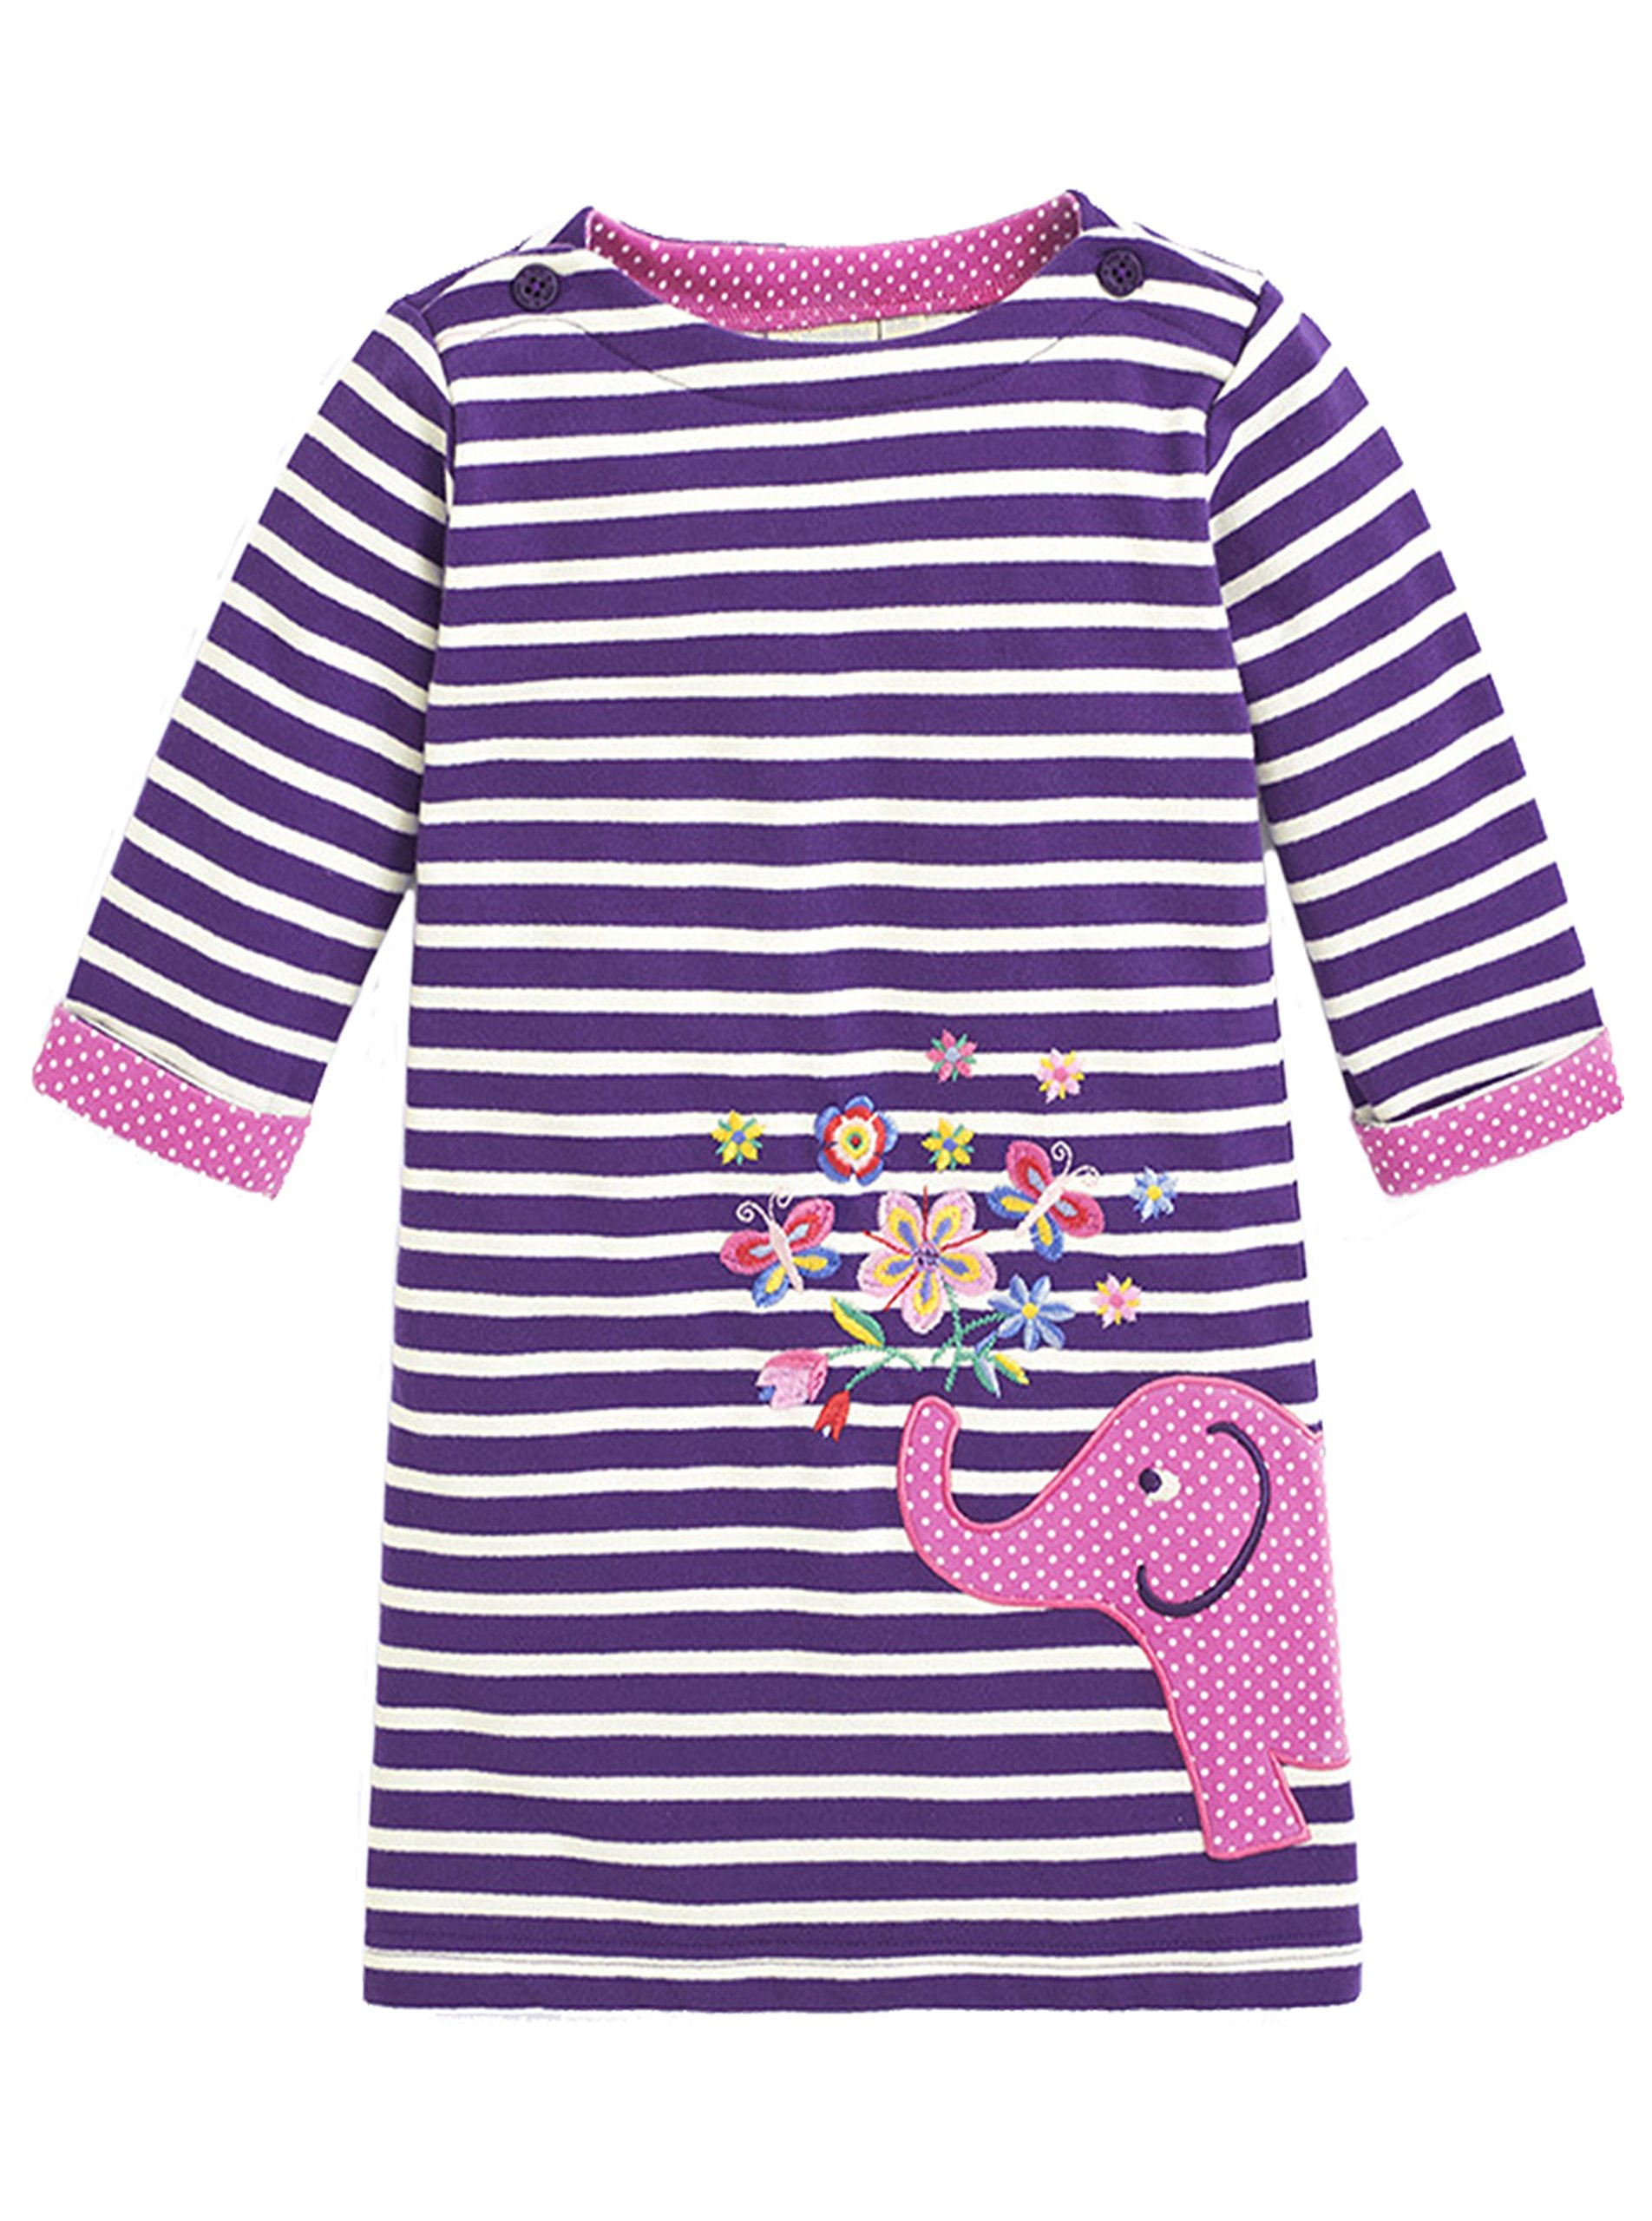 Kids Girls Dress Long Sleeve Cute Cartoon Pattern Princess Dress Purple Stripes 3T